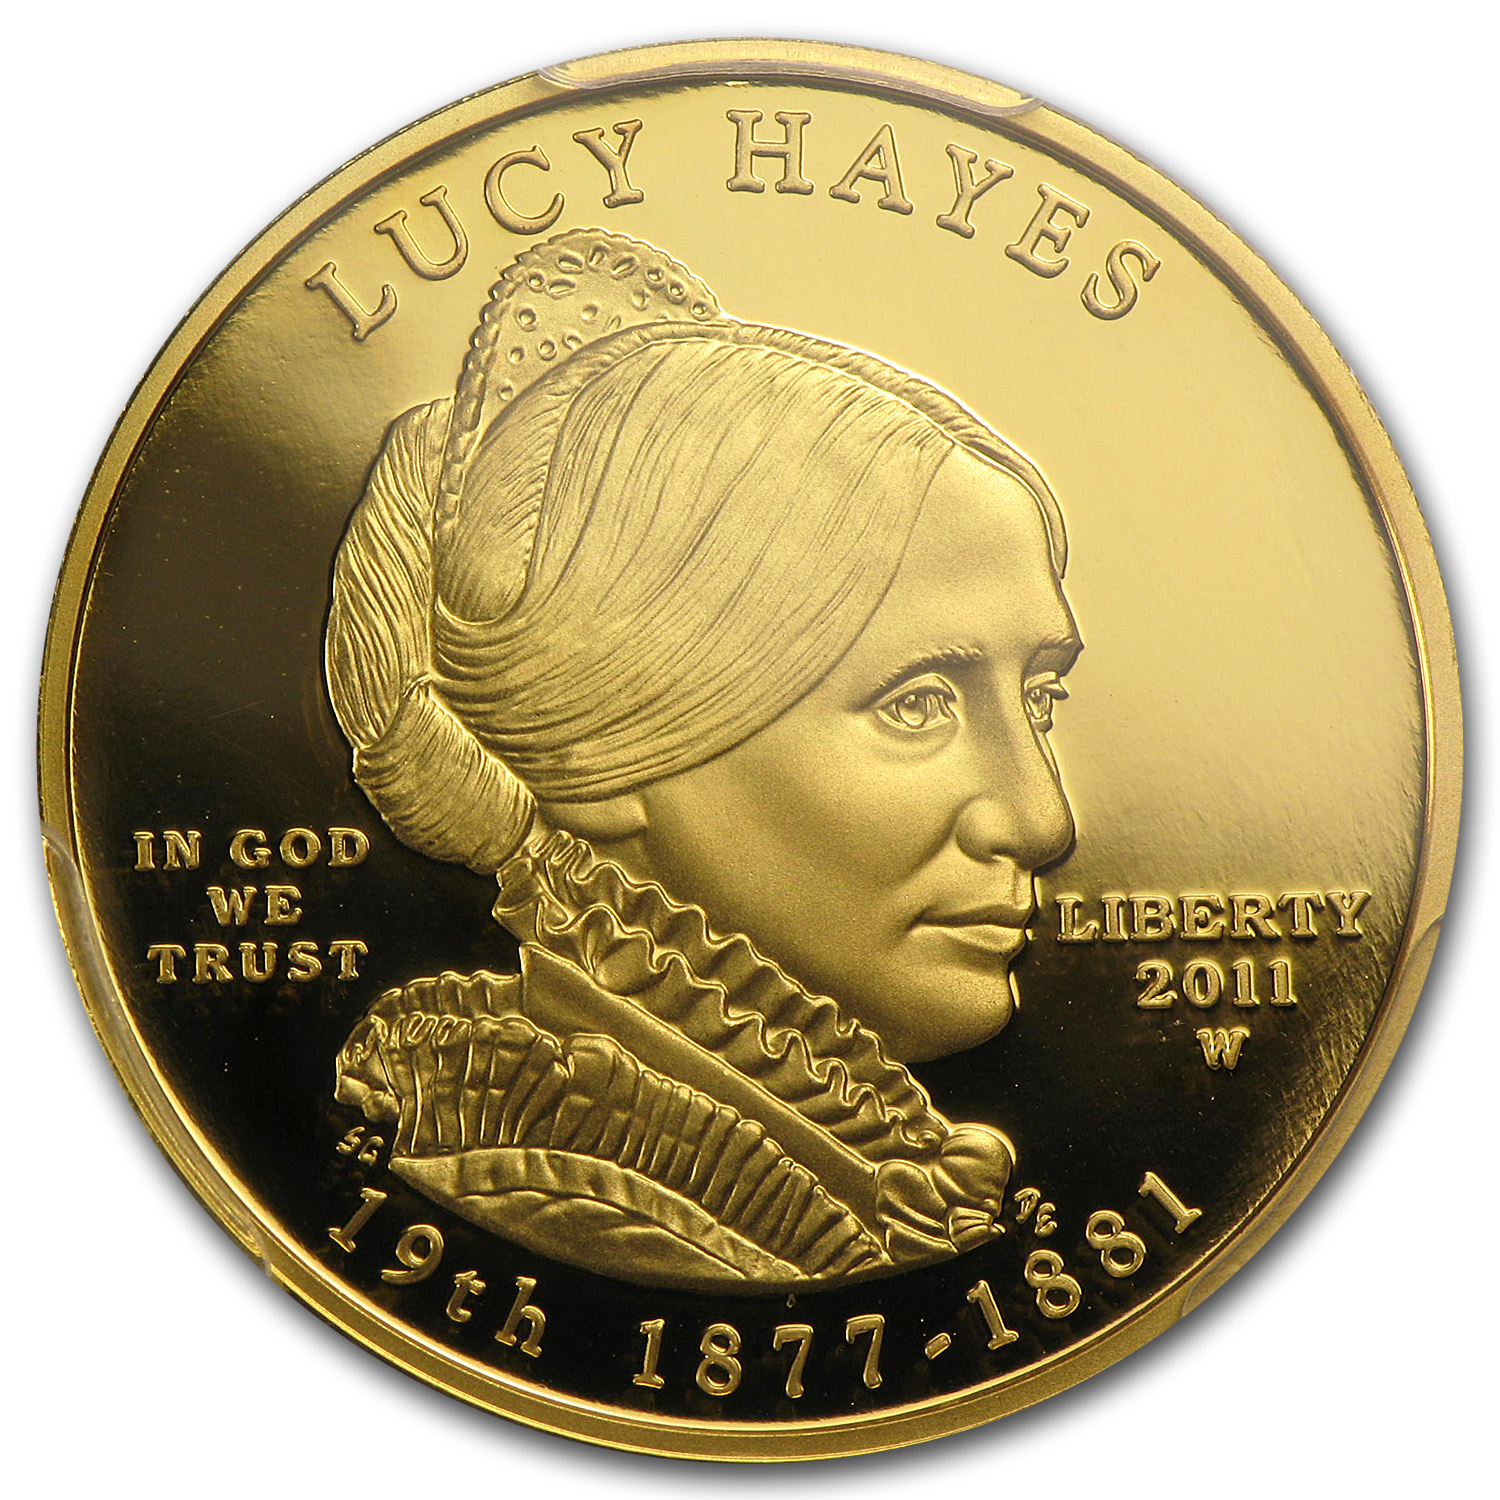 2011-W 1/2 oz Proof Gold Lucy Hayes PR-69 PCGS